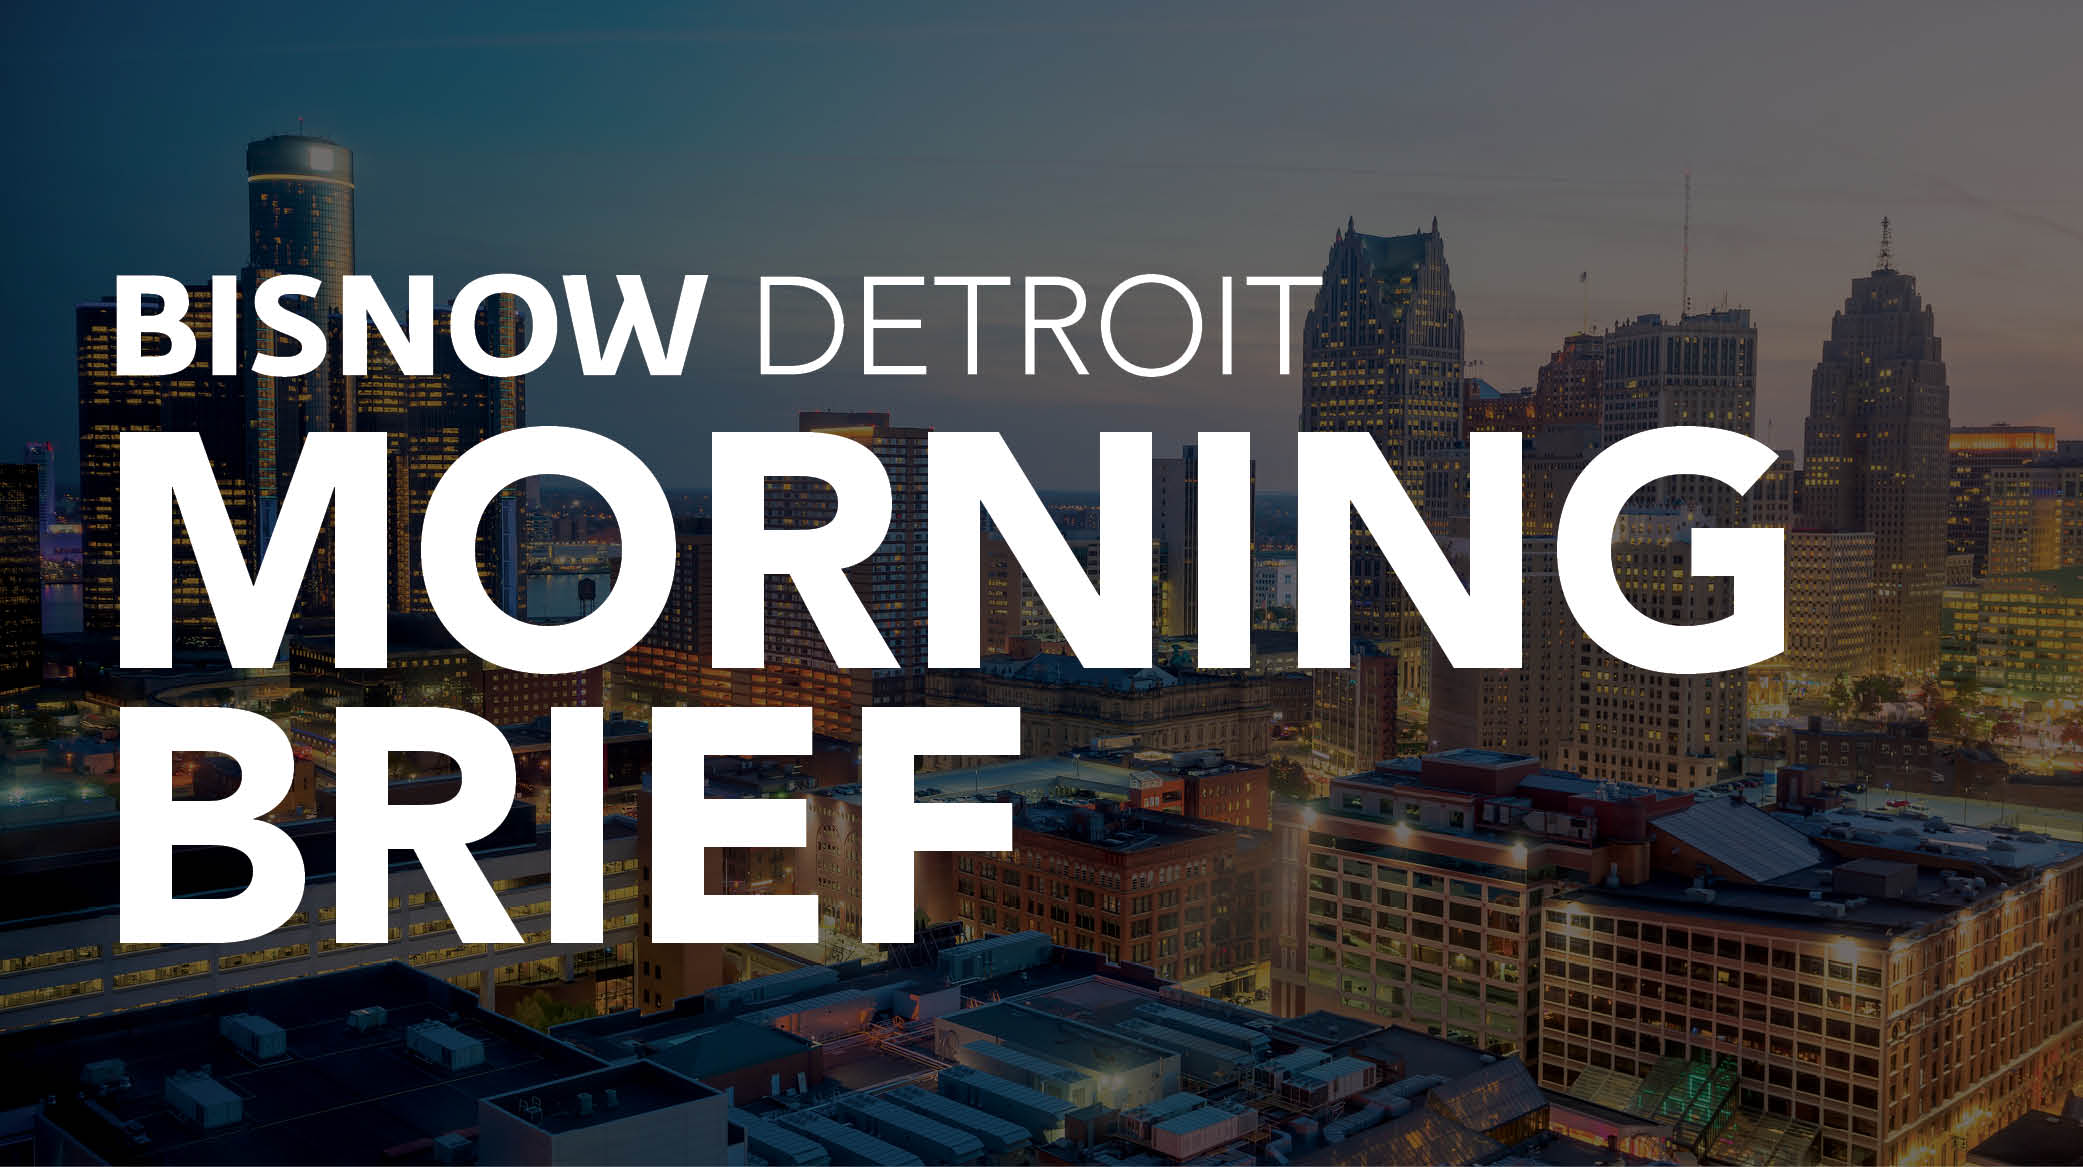 Bisnow Morning Brief Detroit